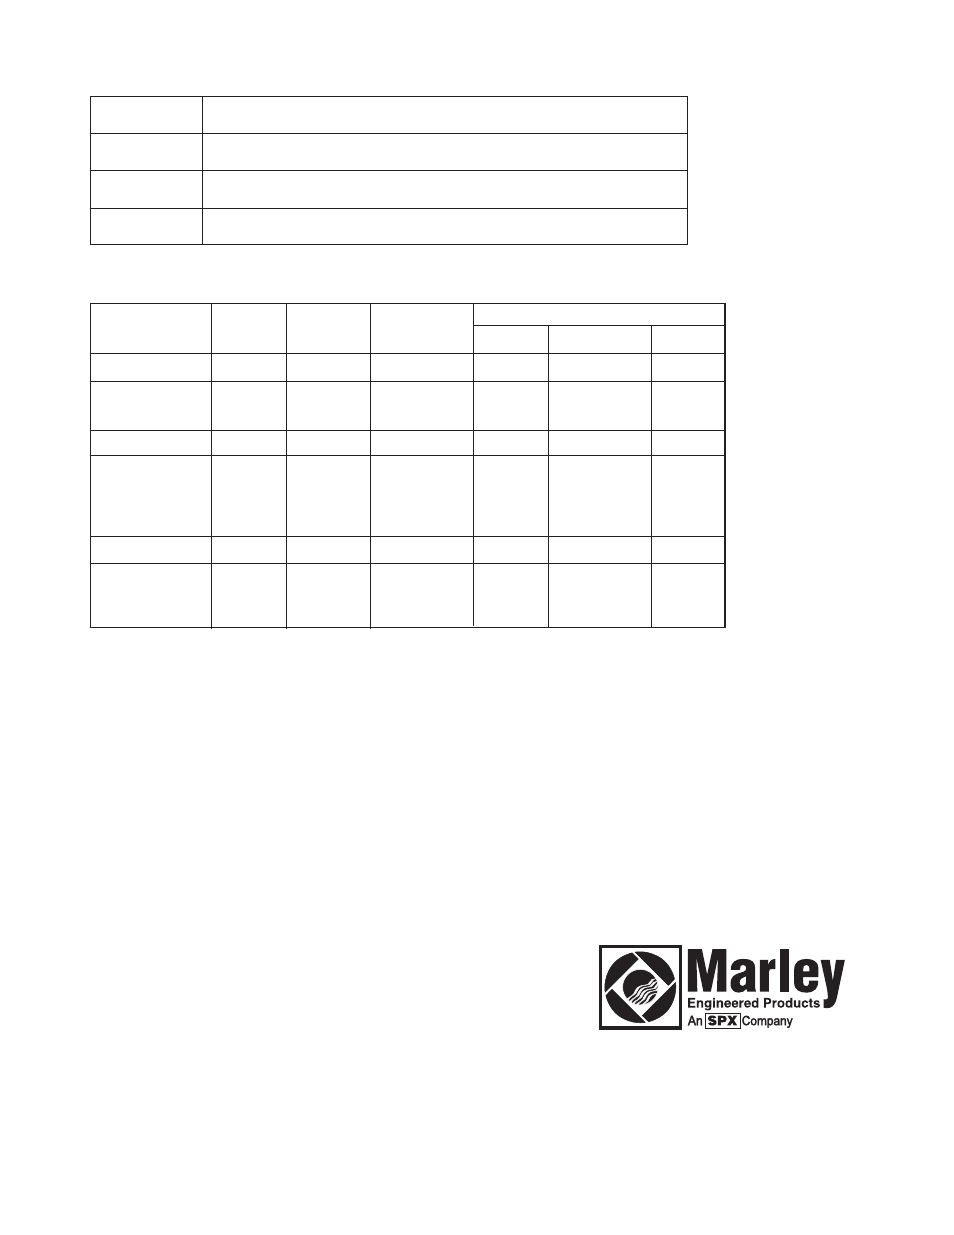 Marley Thermostat Wiring Diagram from www.manualsdir.com